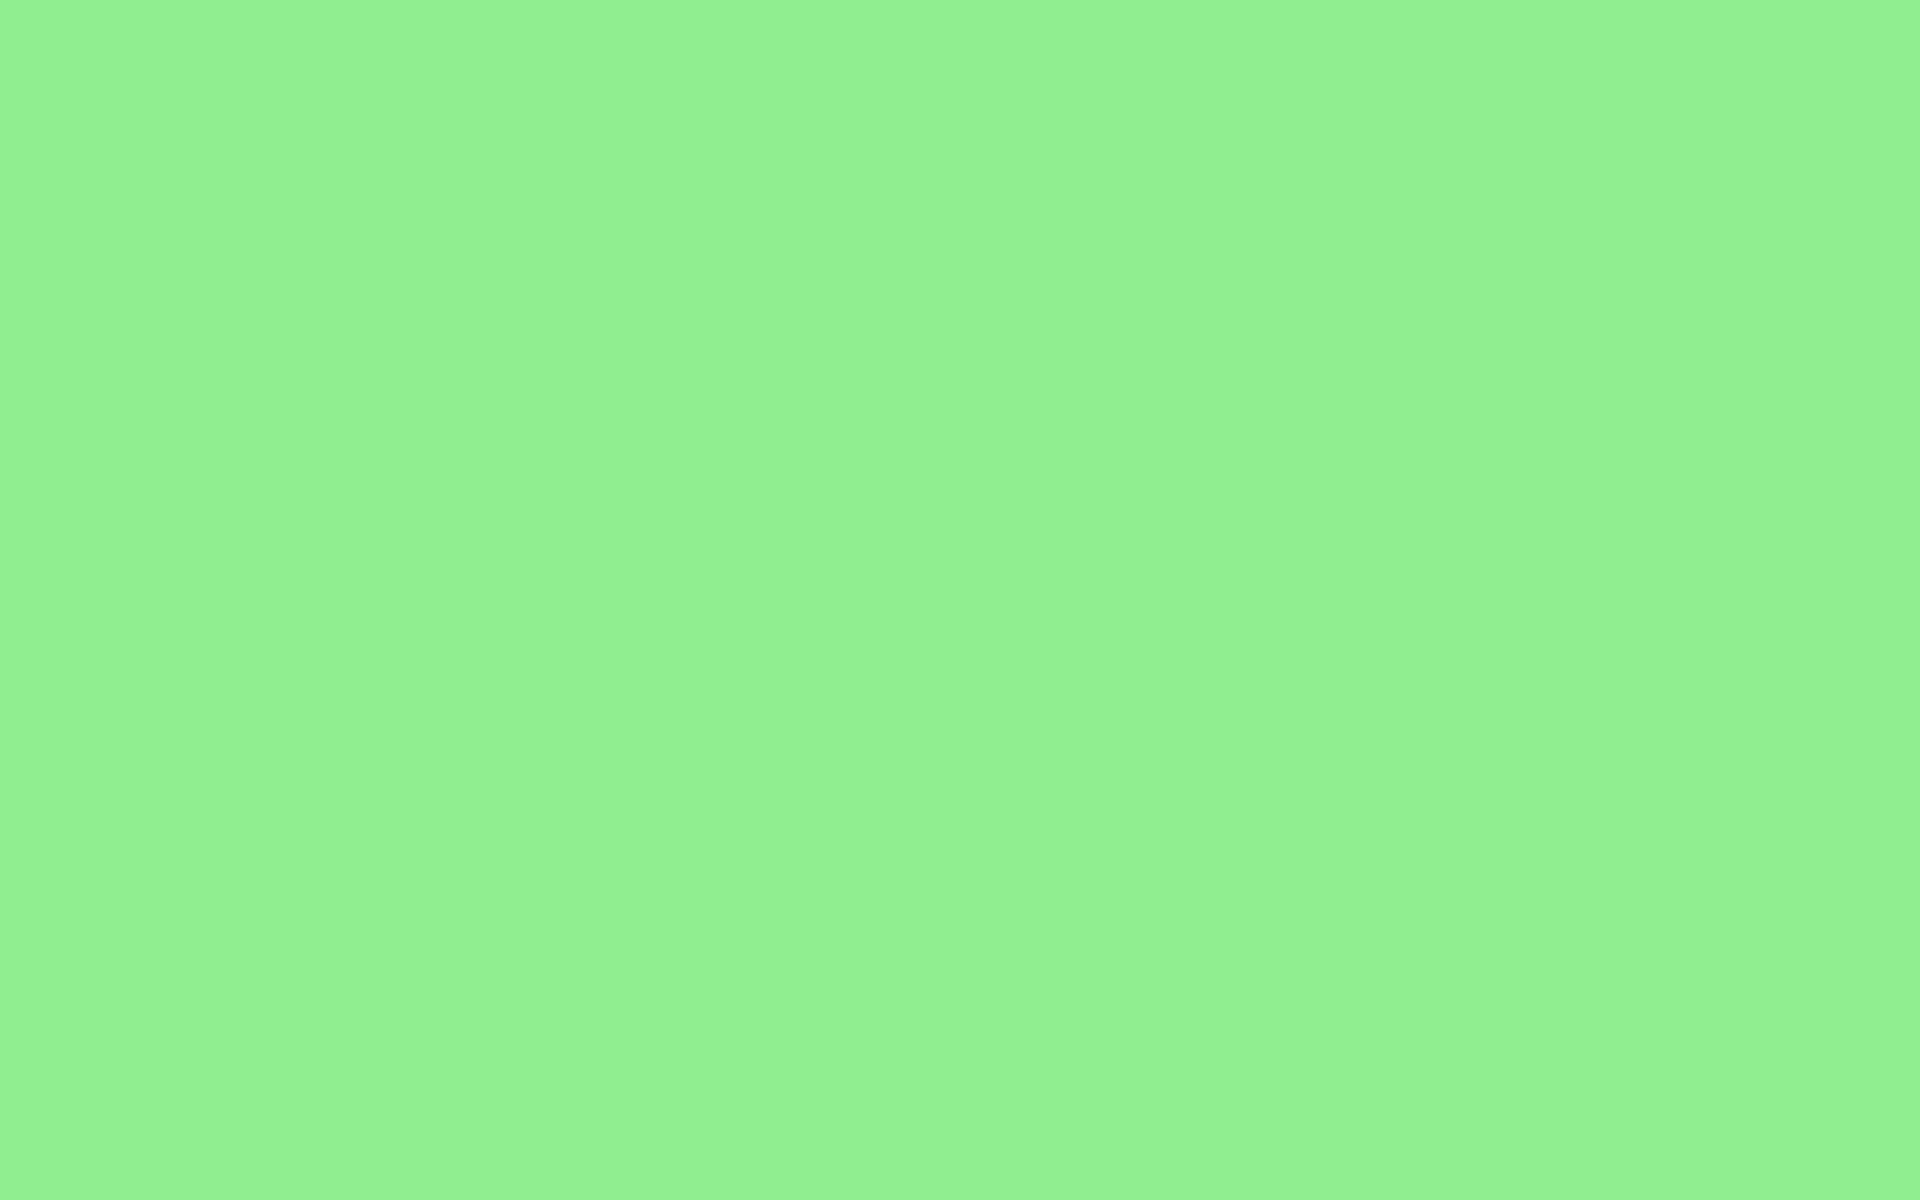 solid green background related - photo #40